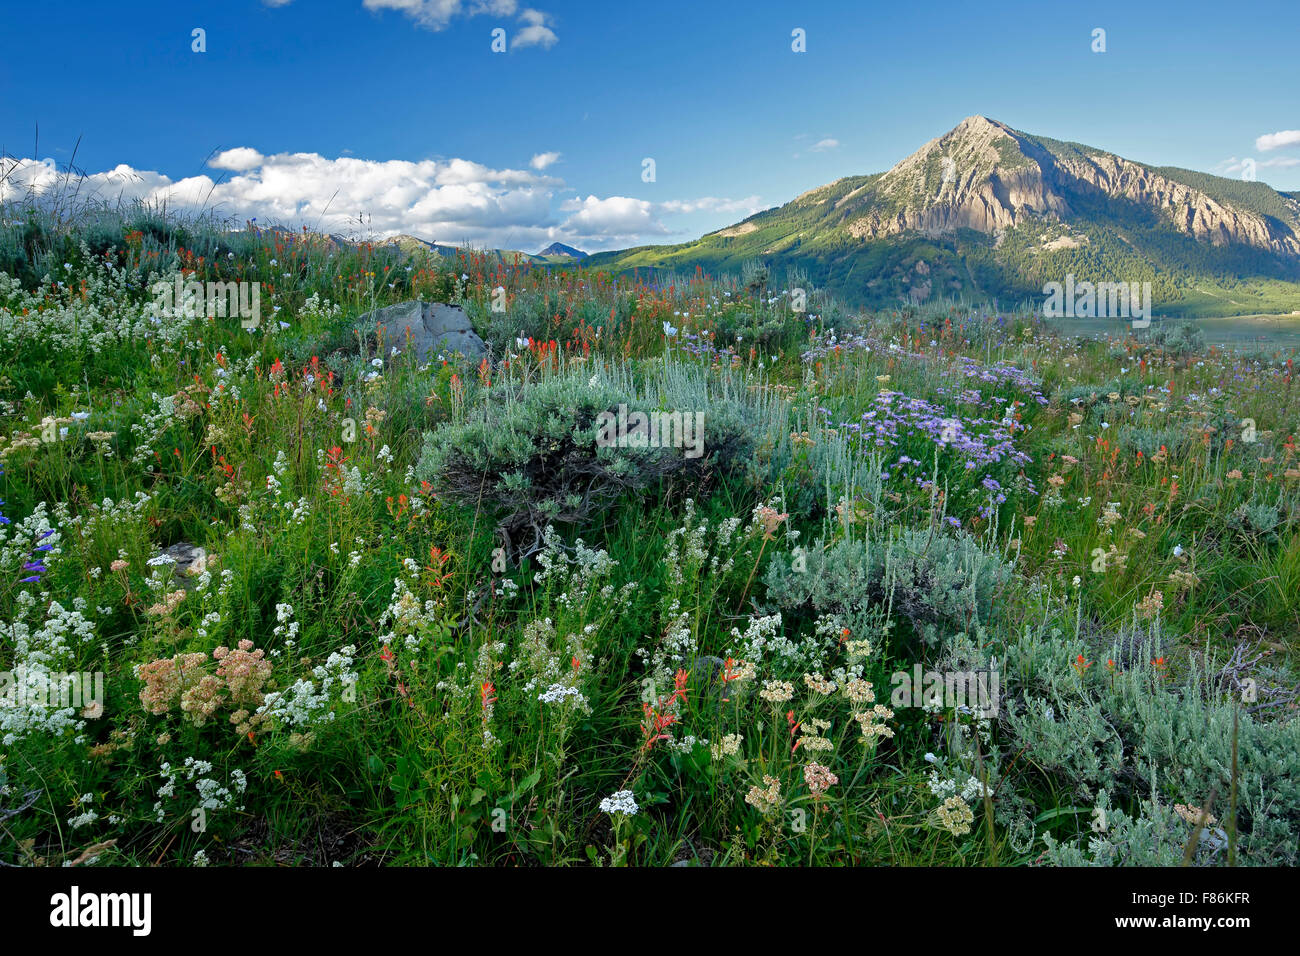 Fleurs sauvages et Mount Crested Butte (12 162 pi), Crested Butte, Colorado USA Photo Stock